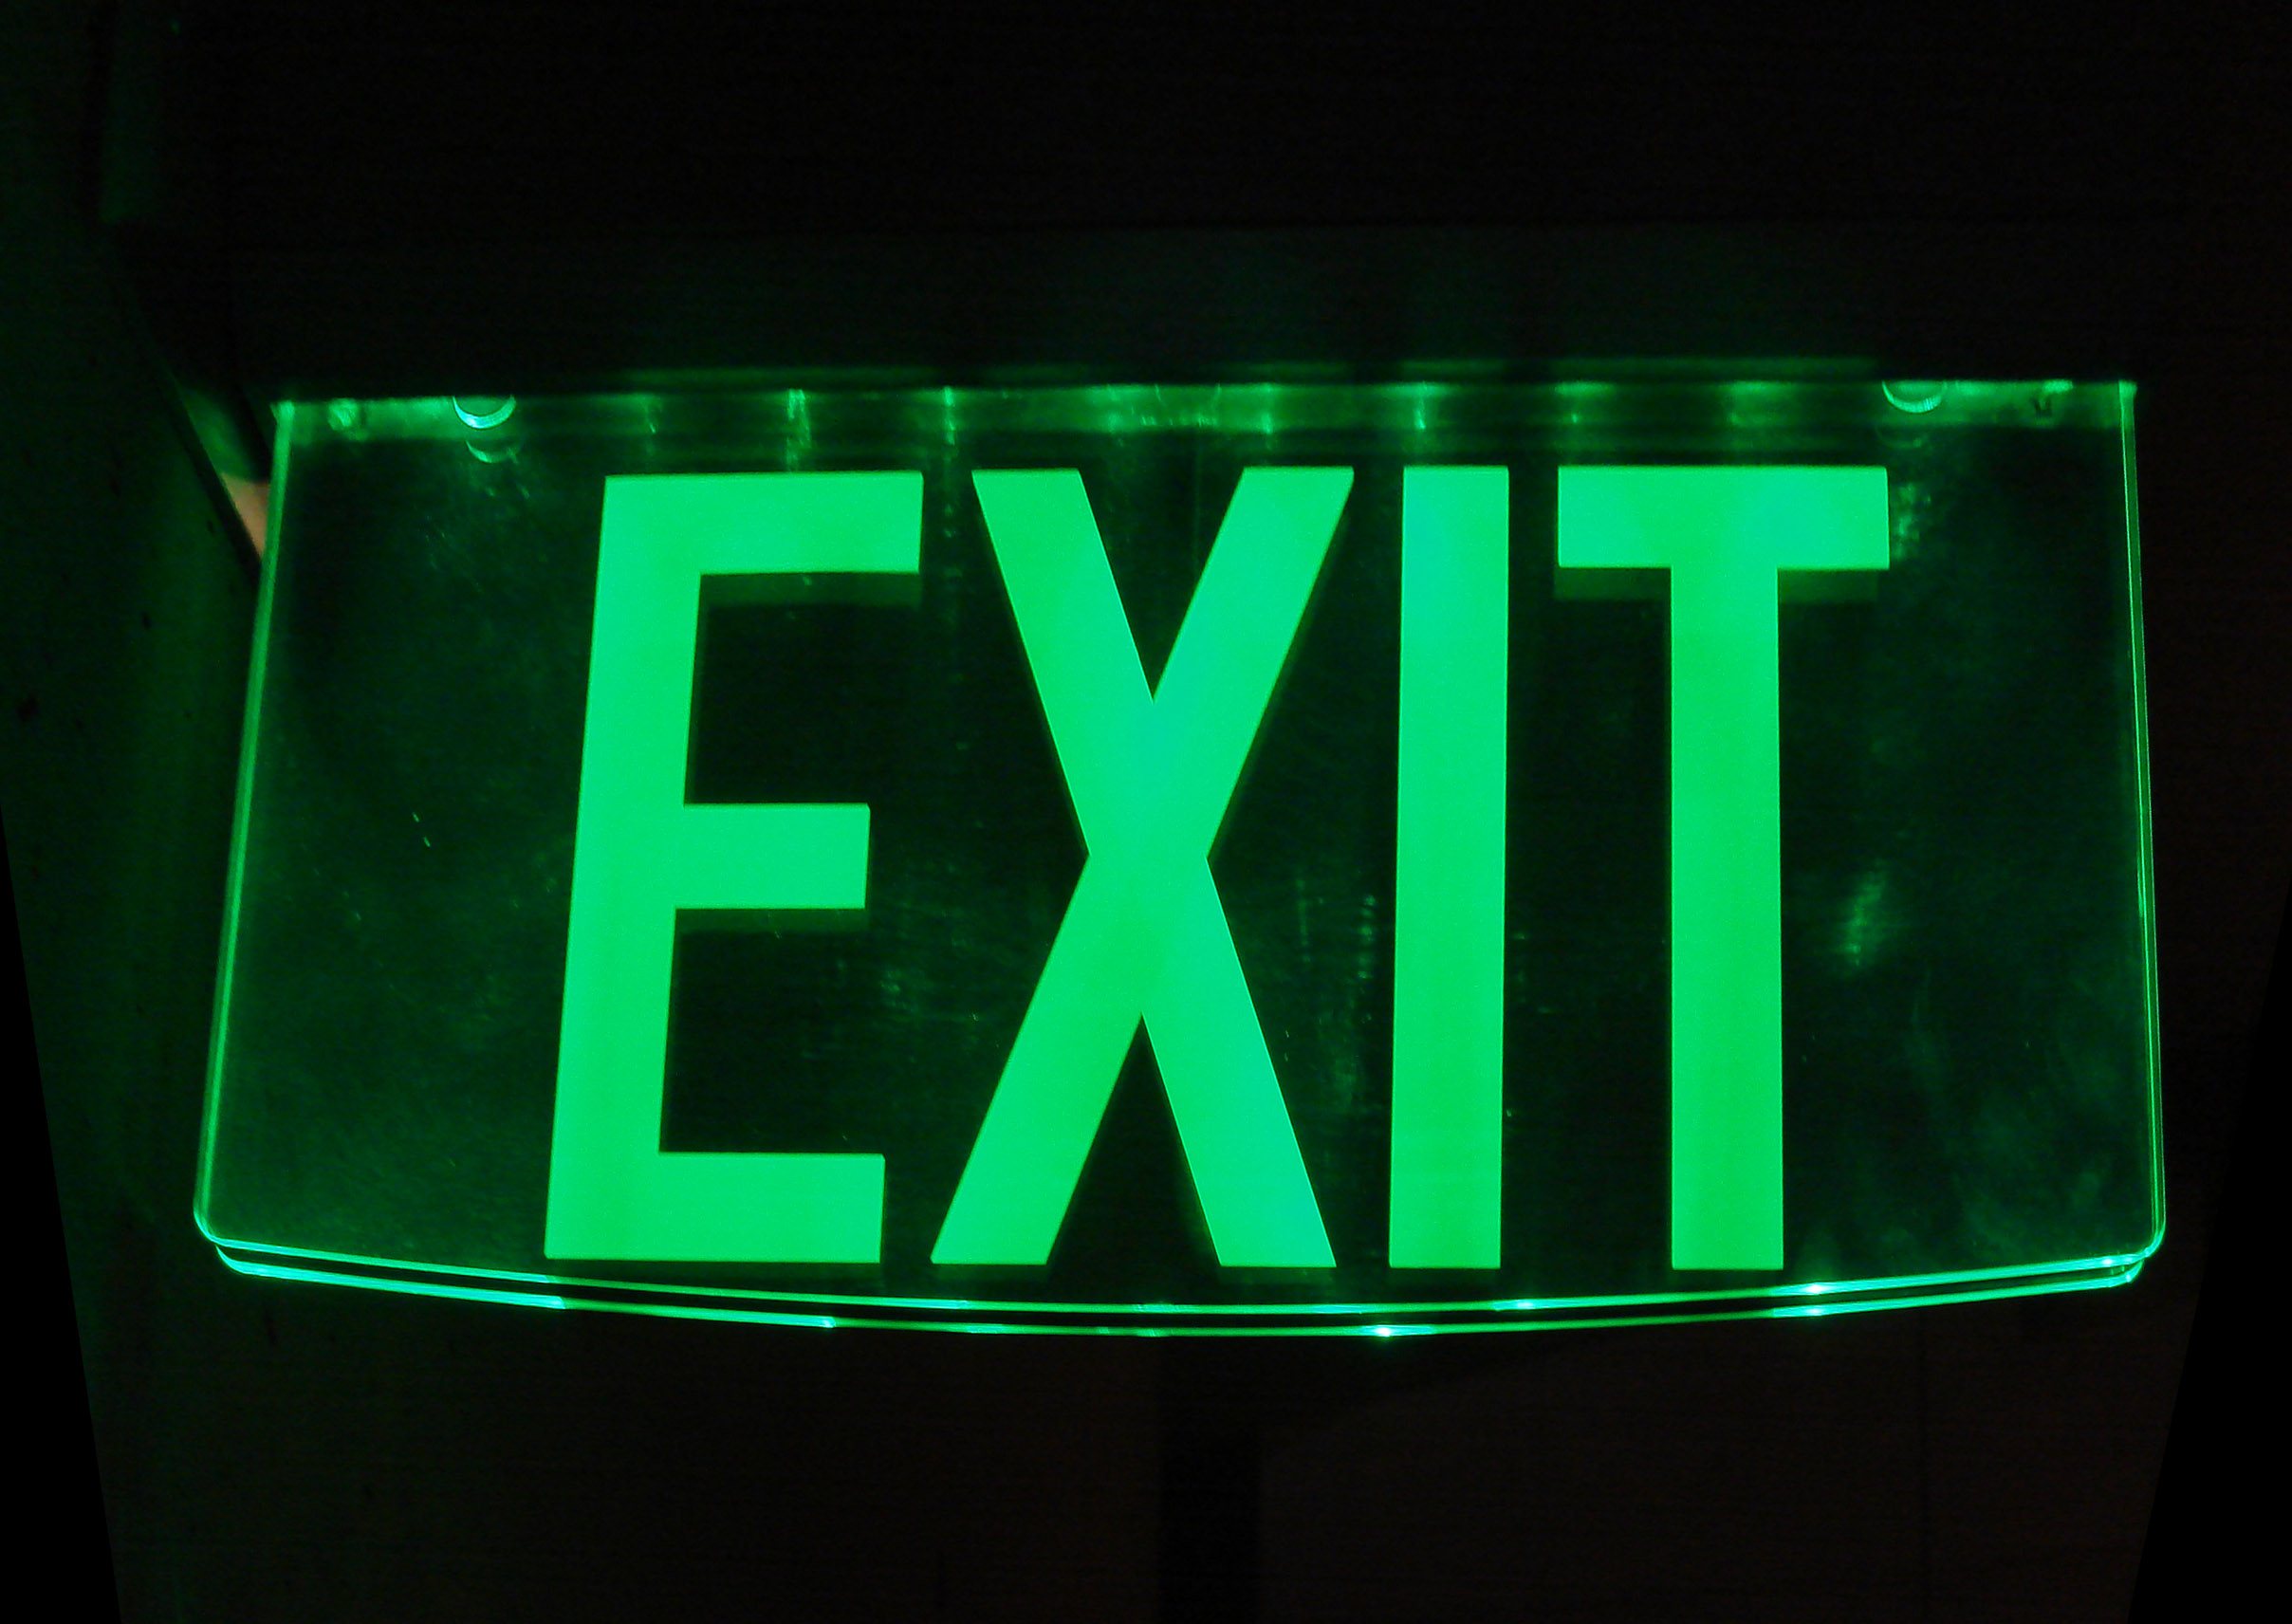 Glass_exit_sign.jpg